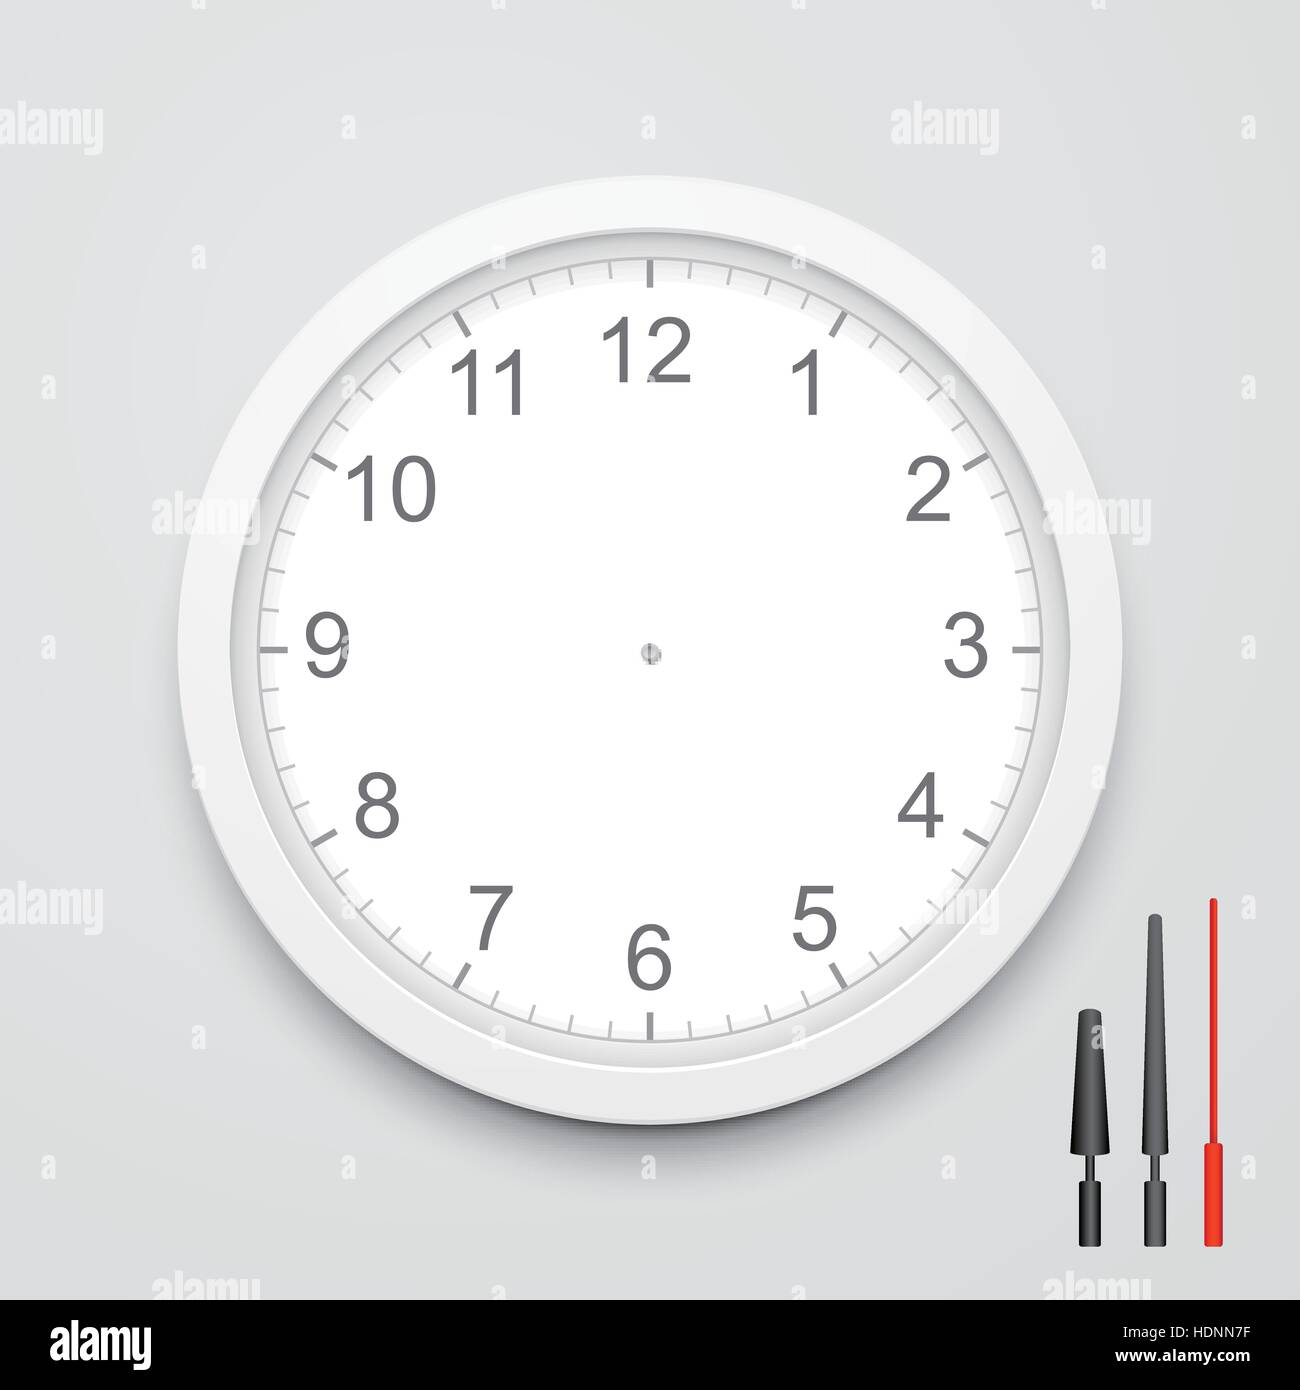 3d vector blank clock face with hour minute and second hands stock 3d vector blank clock face with hour minute and second hands isolated on white background thecheapjerseys Images